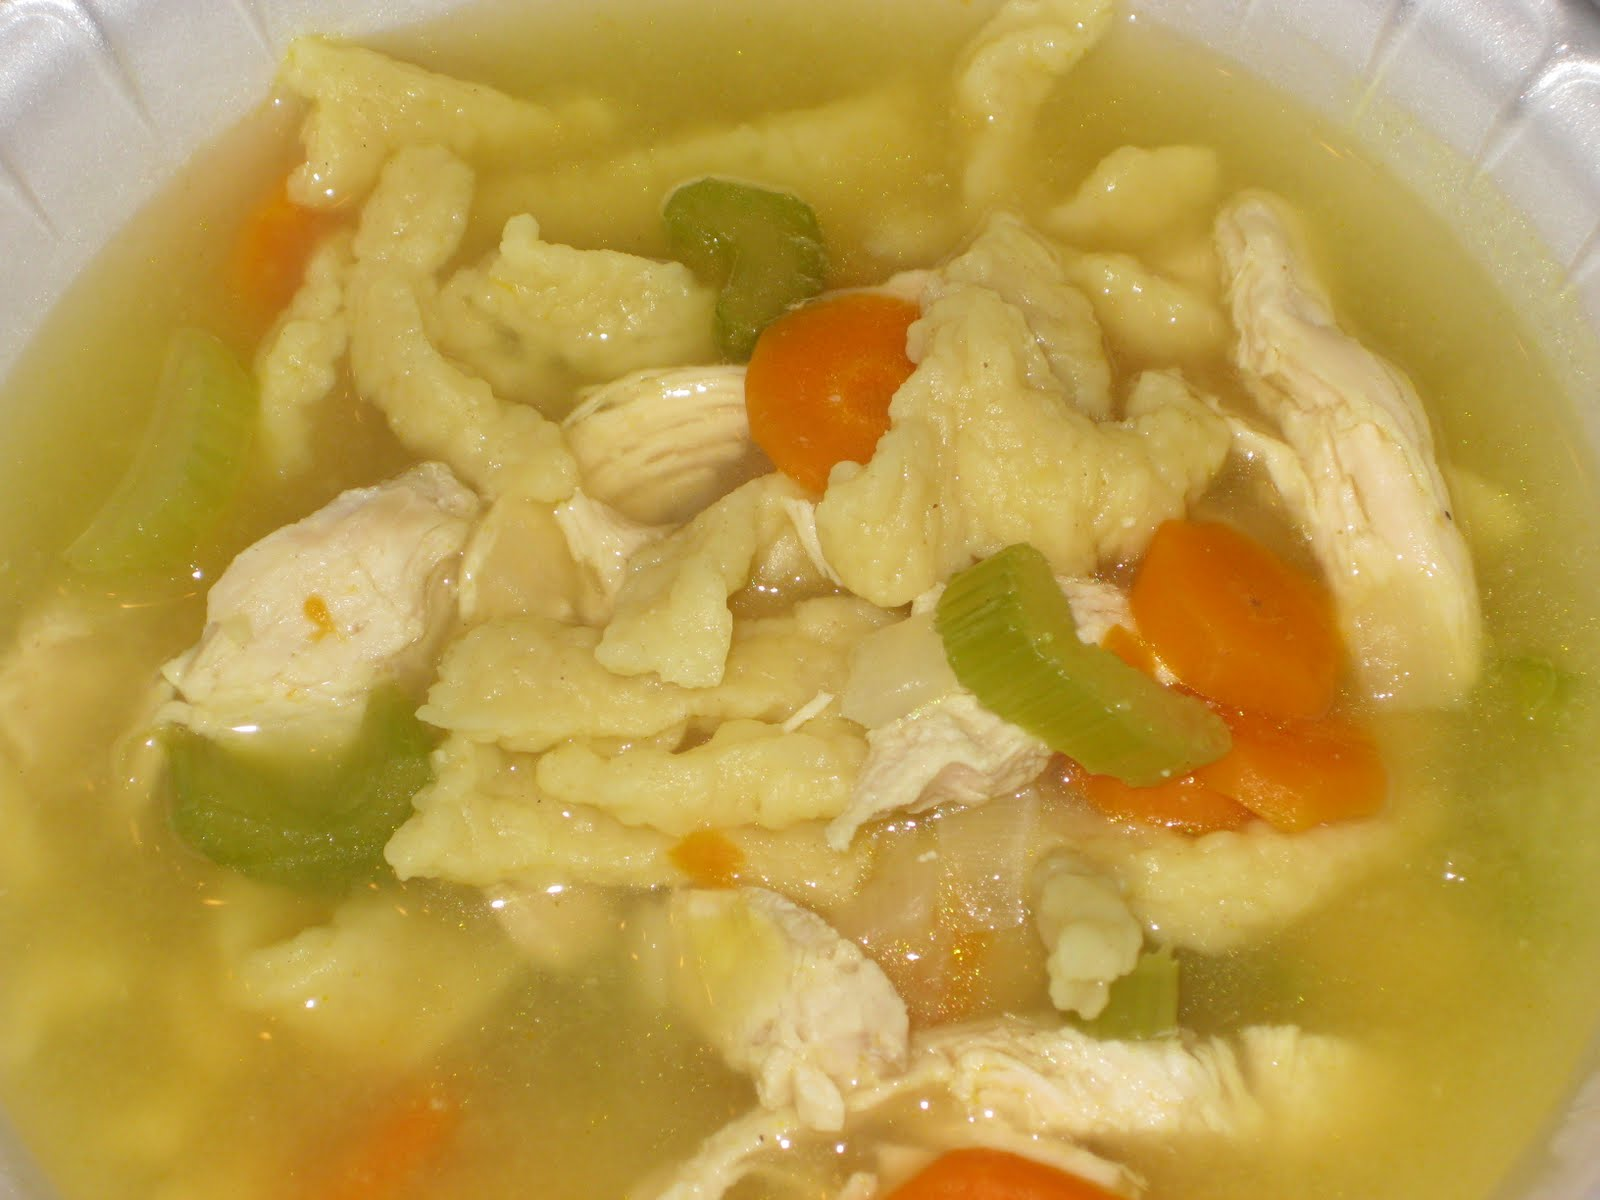 Time For Supper!: Homemade Chicken Noodle Soup